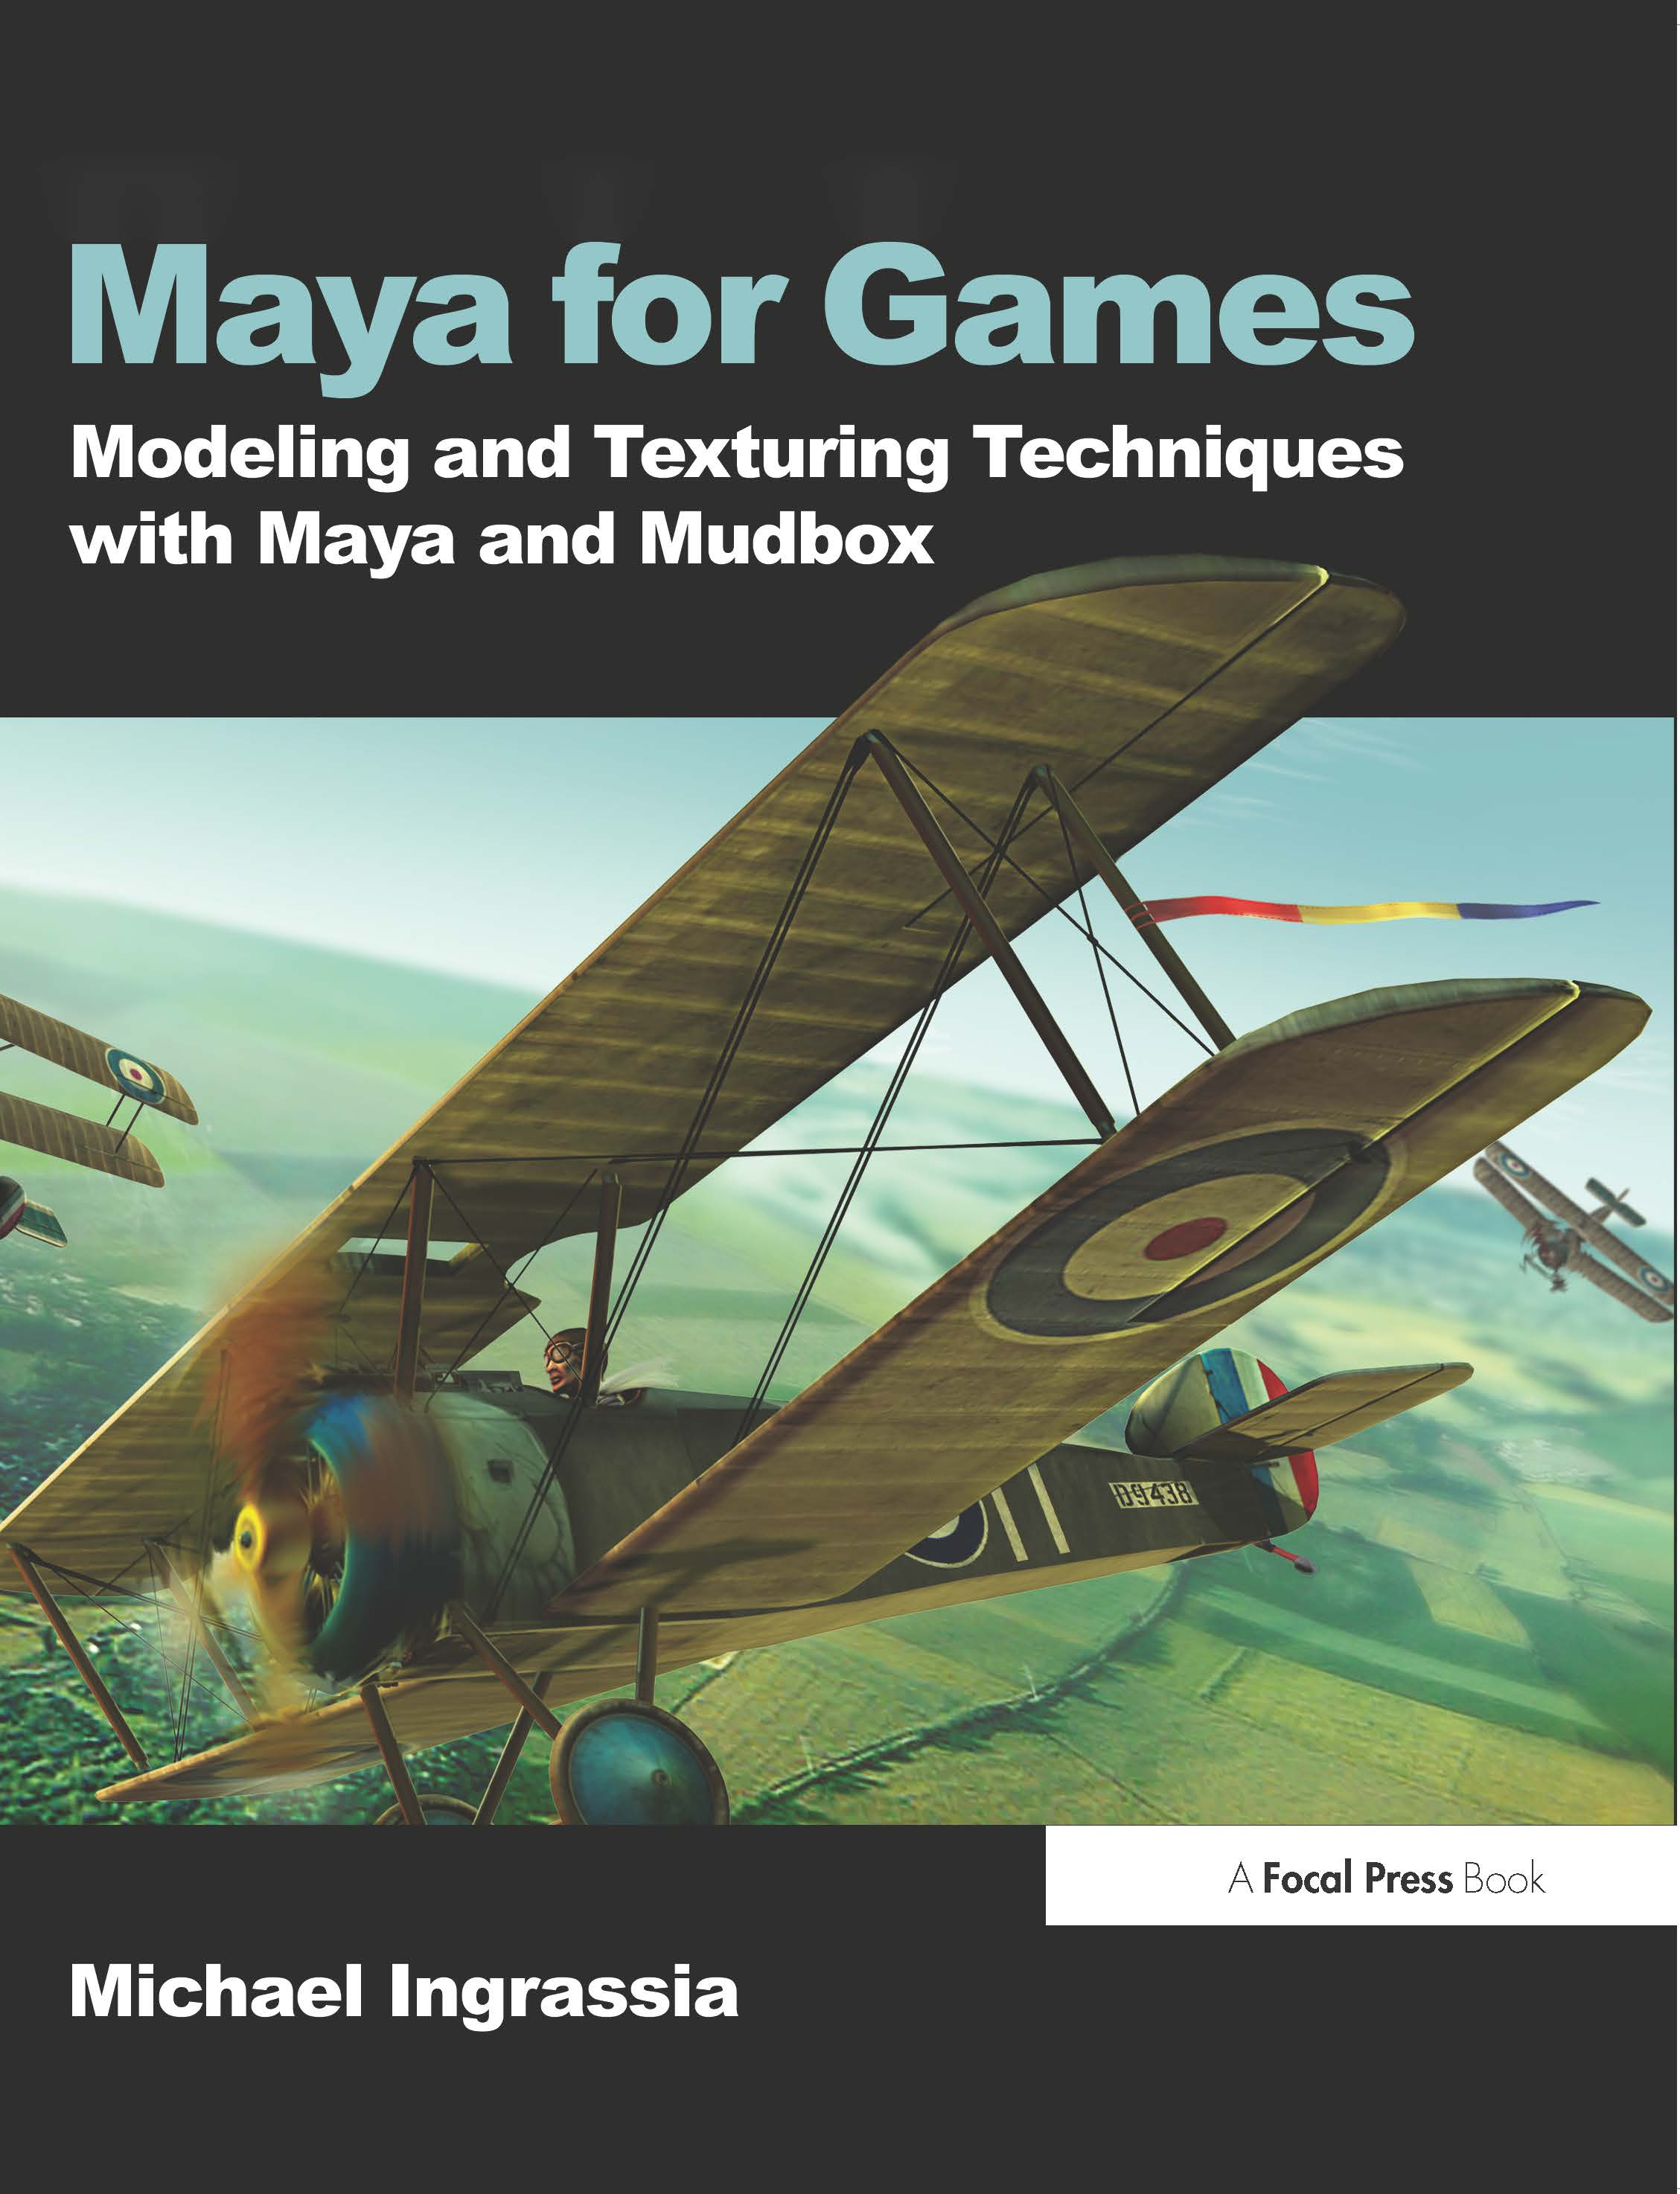 Maya for Games: Modeling and Texturing Techniques with Maya and Mudbox book cover